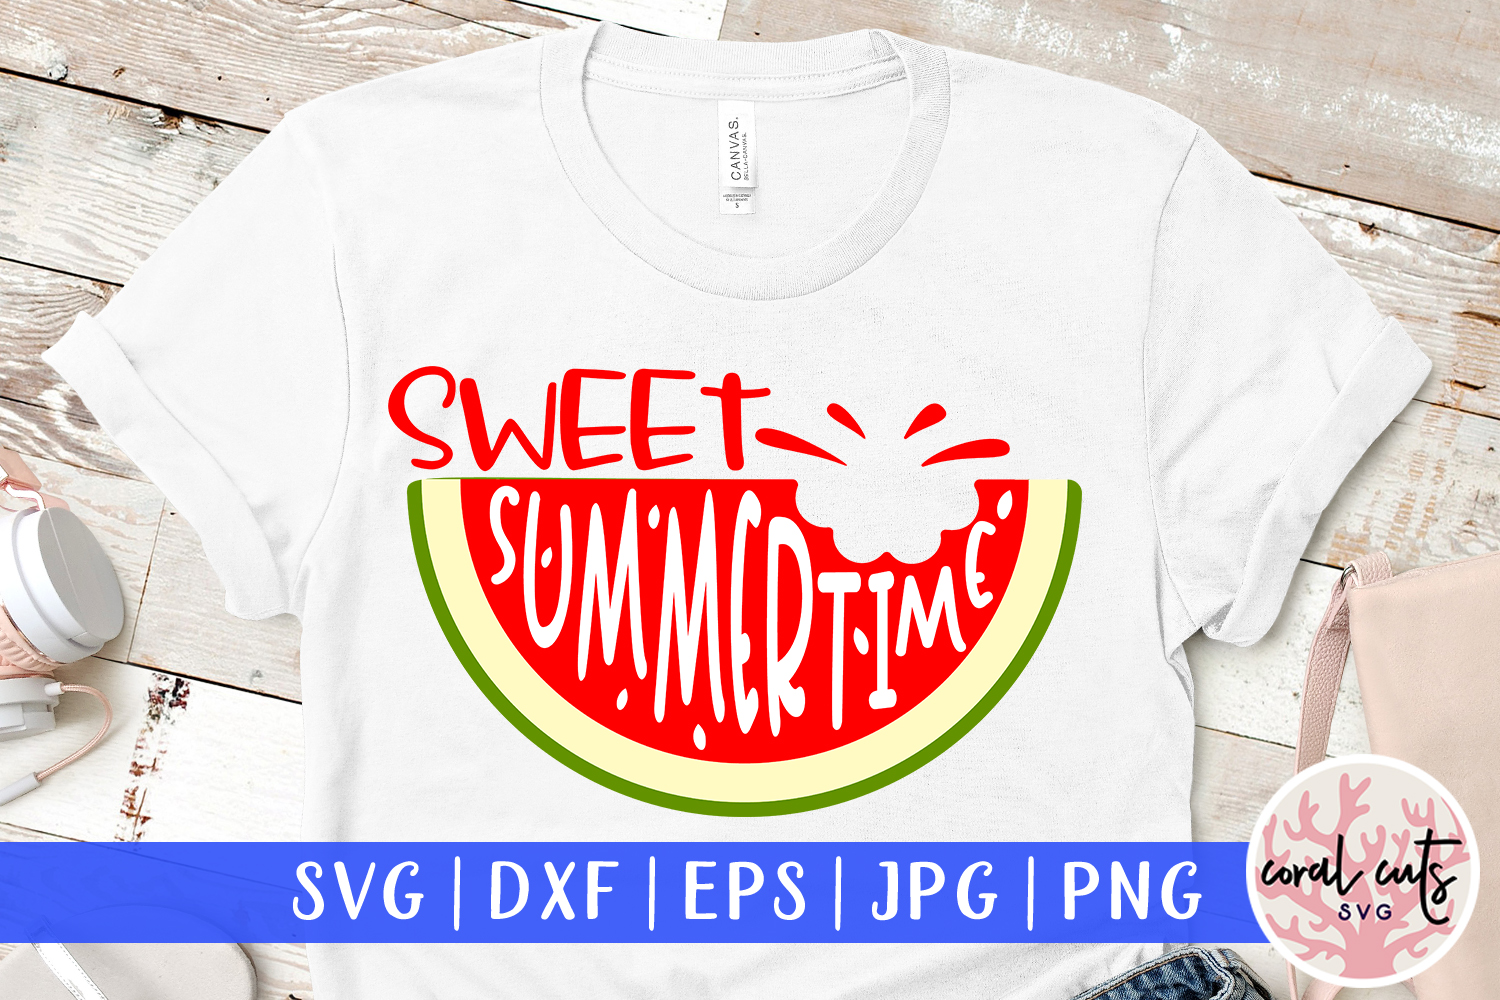 Download Free Sweet Summertime Svg Cut File Graphic By Coralcutssvg Creative for Cricut Explore, Silhouette and other cutting machines.